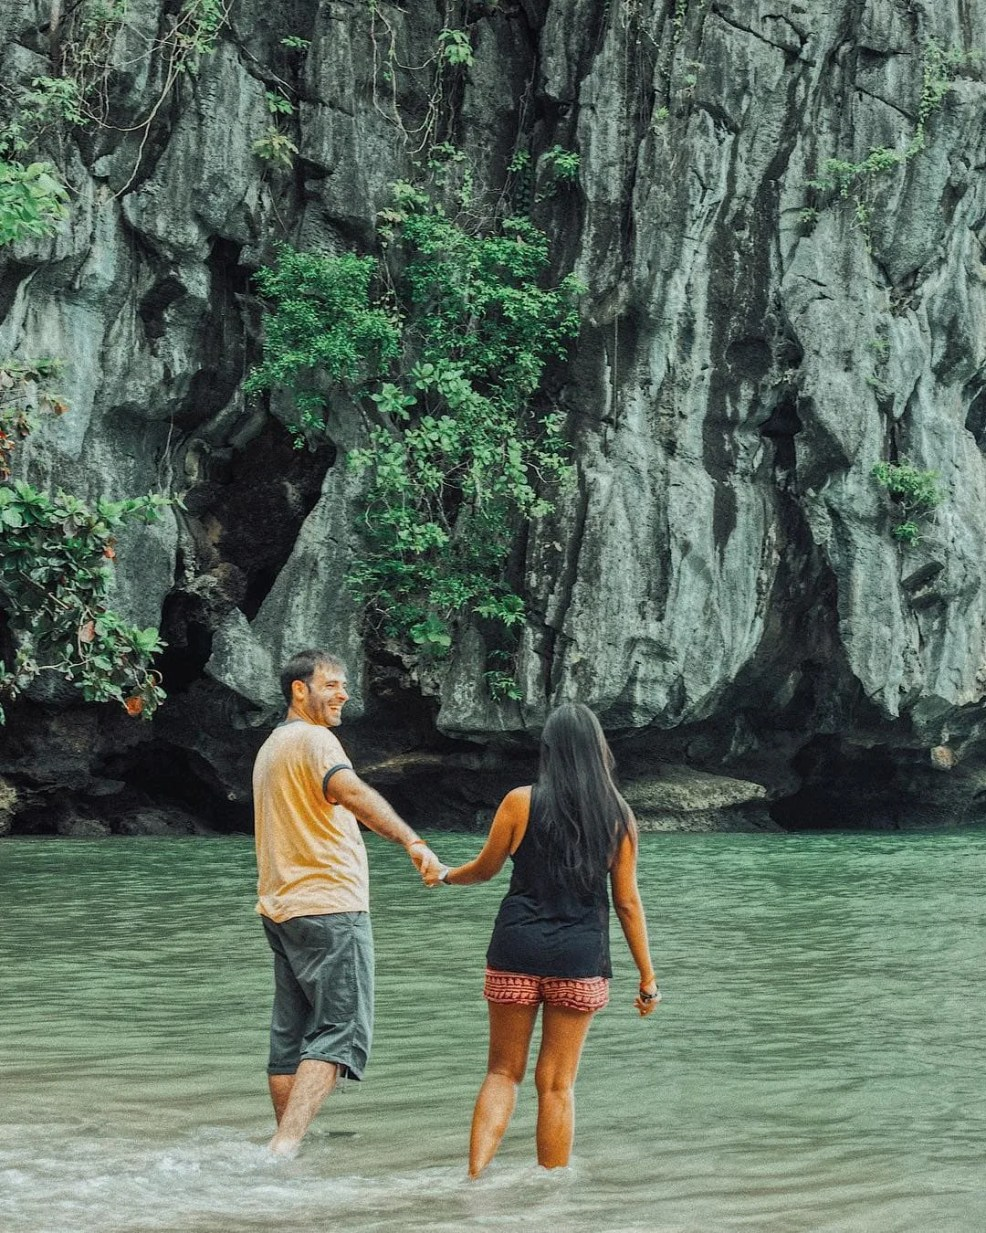 best places to visit in the philippines, tourist spots in the philippines, places to visit in the philippines for couples